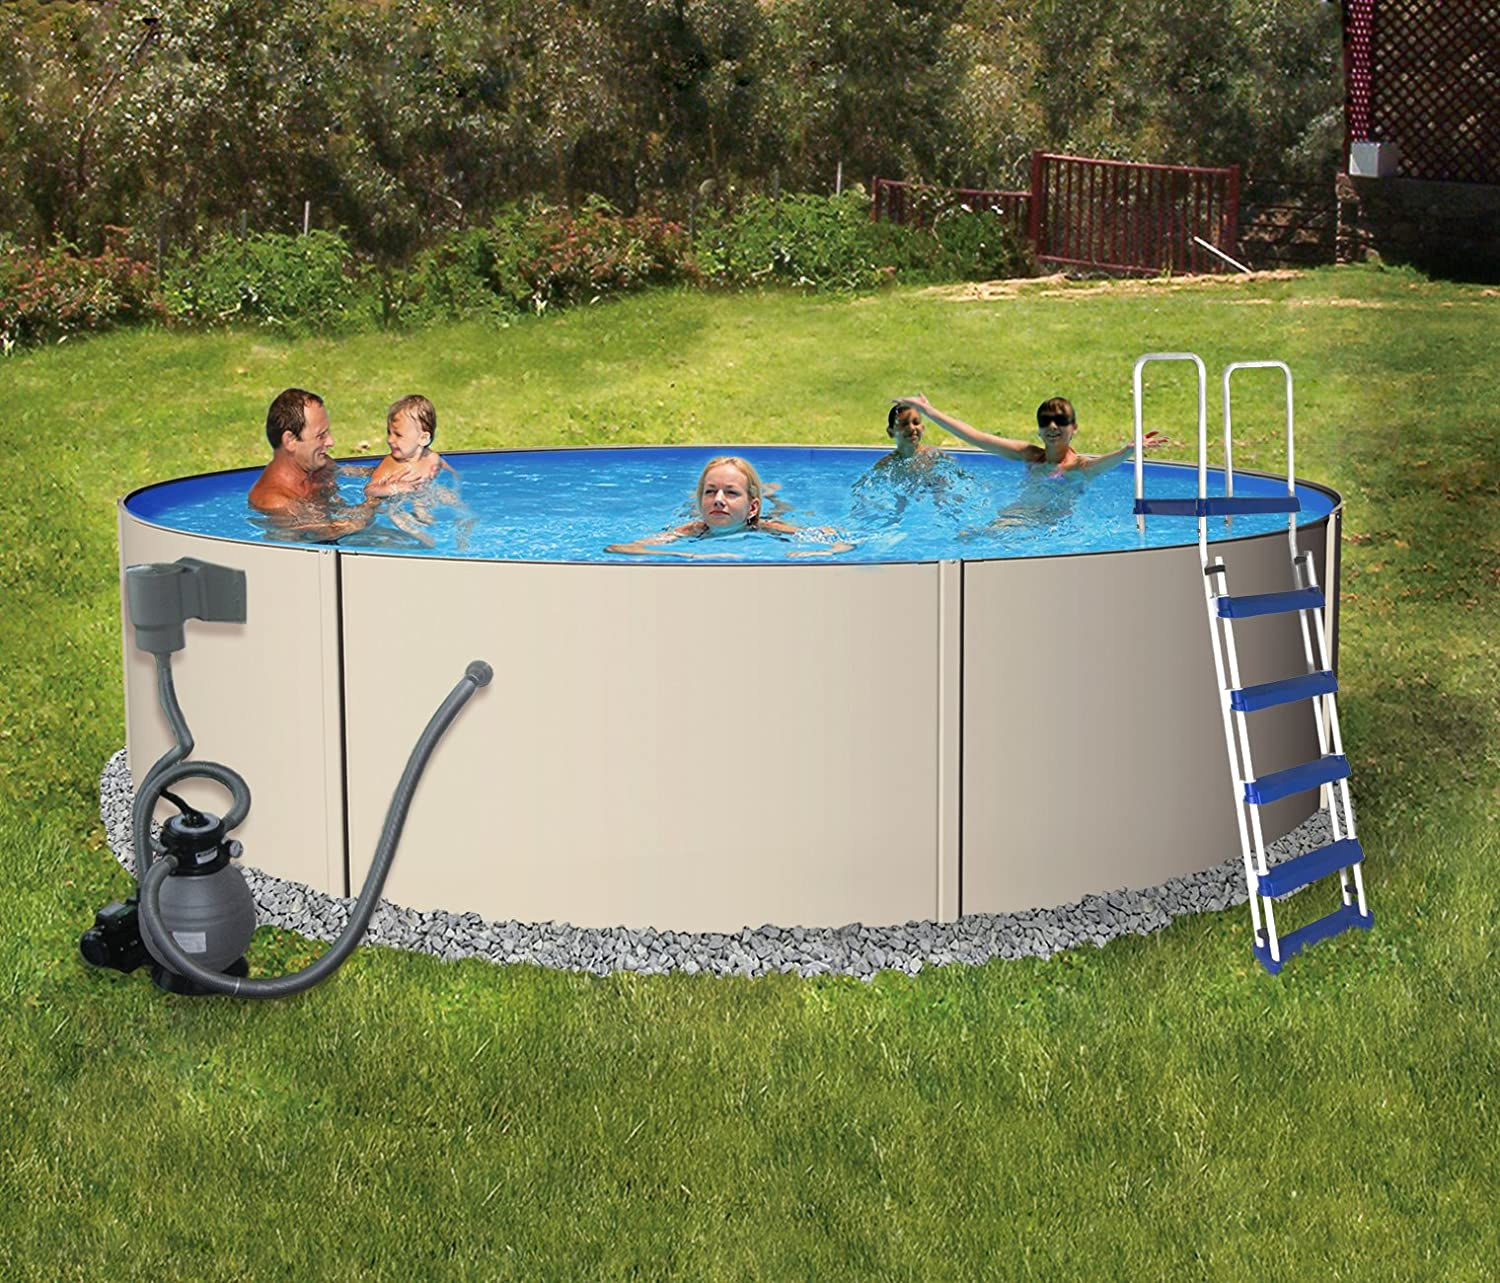 Top 10 Best Above Ground Pool Reviews 2019 Our 1 Rated